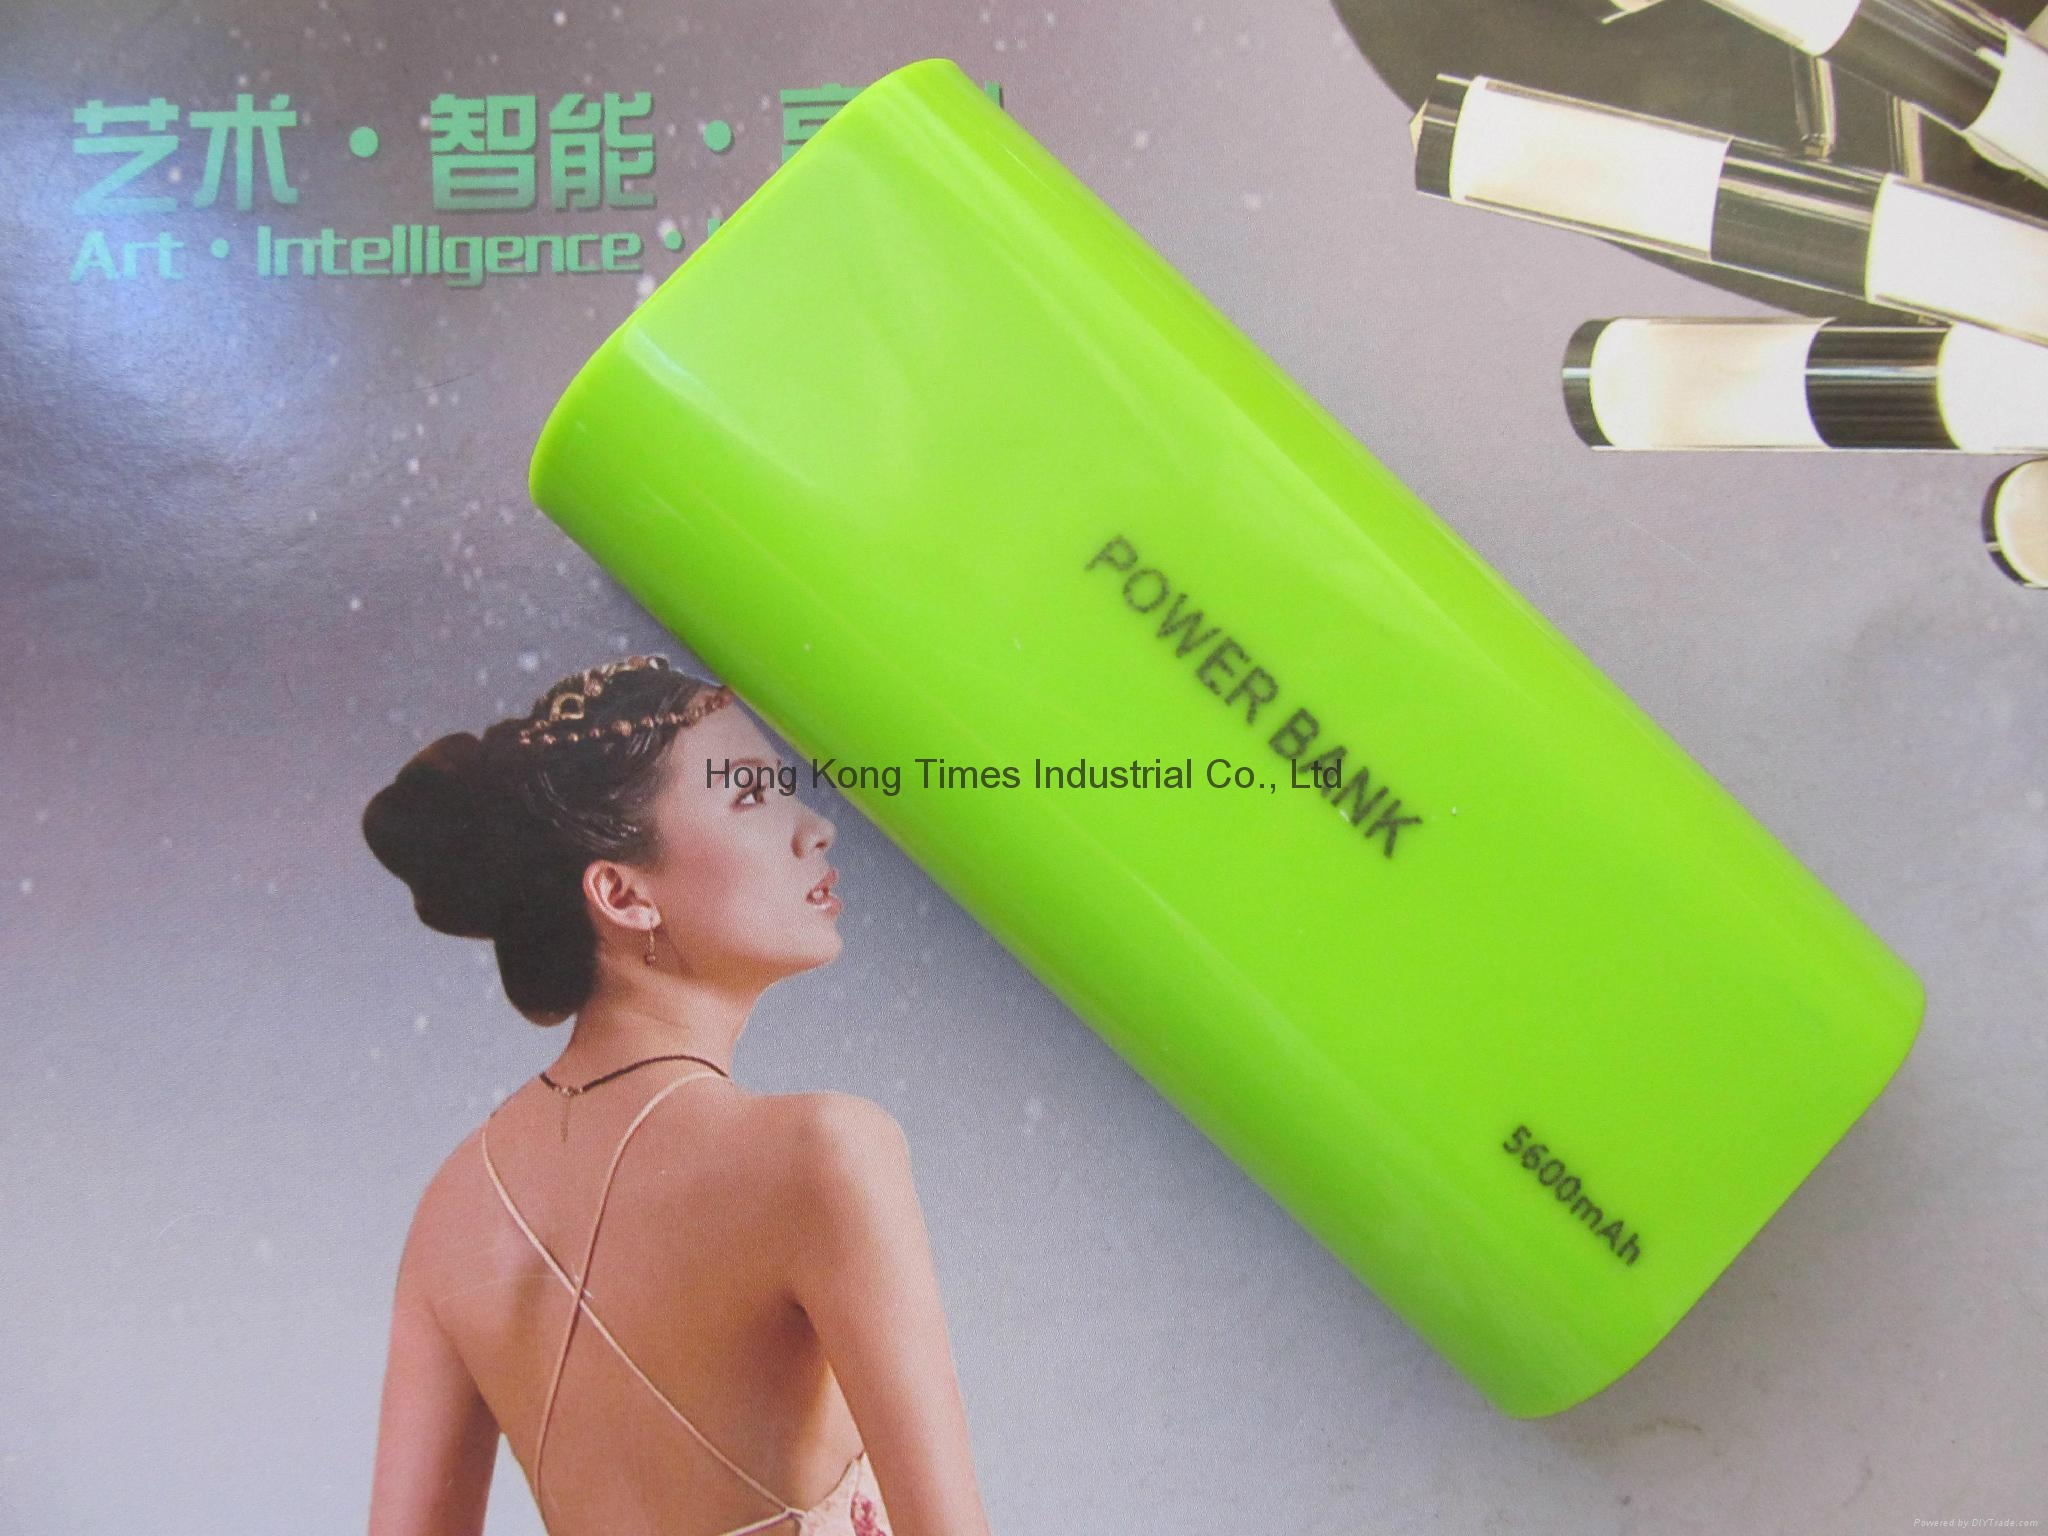 External Portable Battery Power Bank Charger For iPhone 6 6 Plus 5 5s 5c For S6